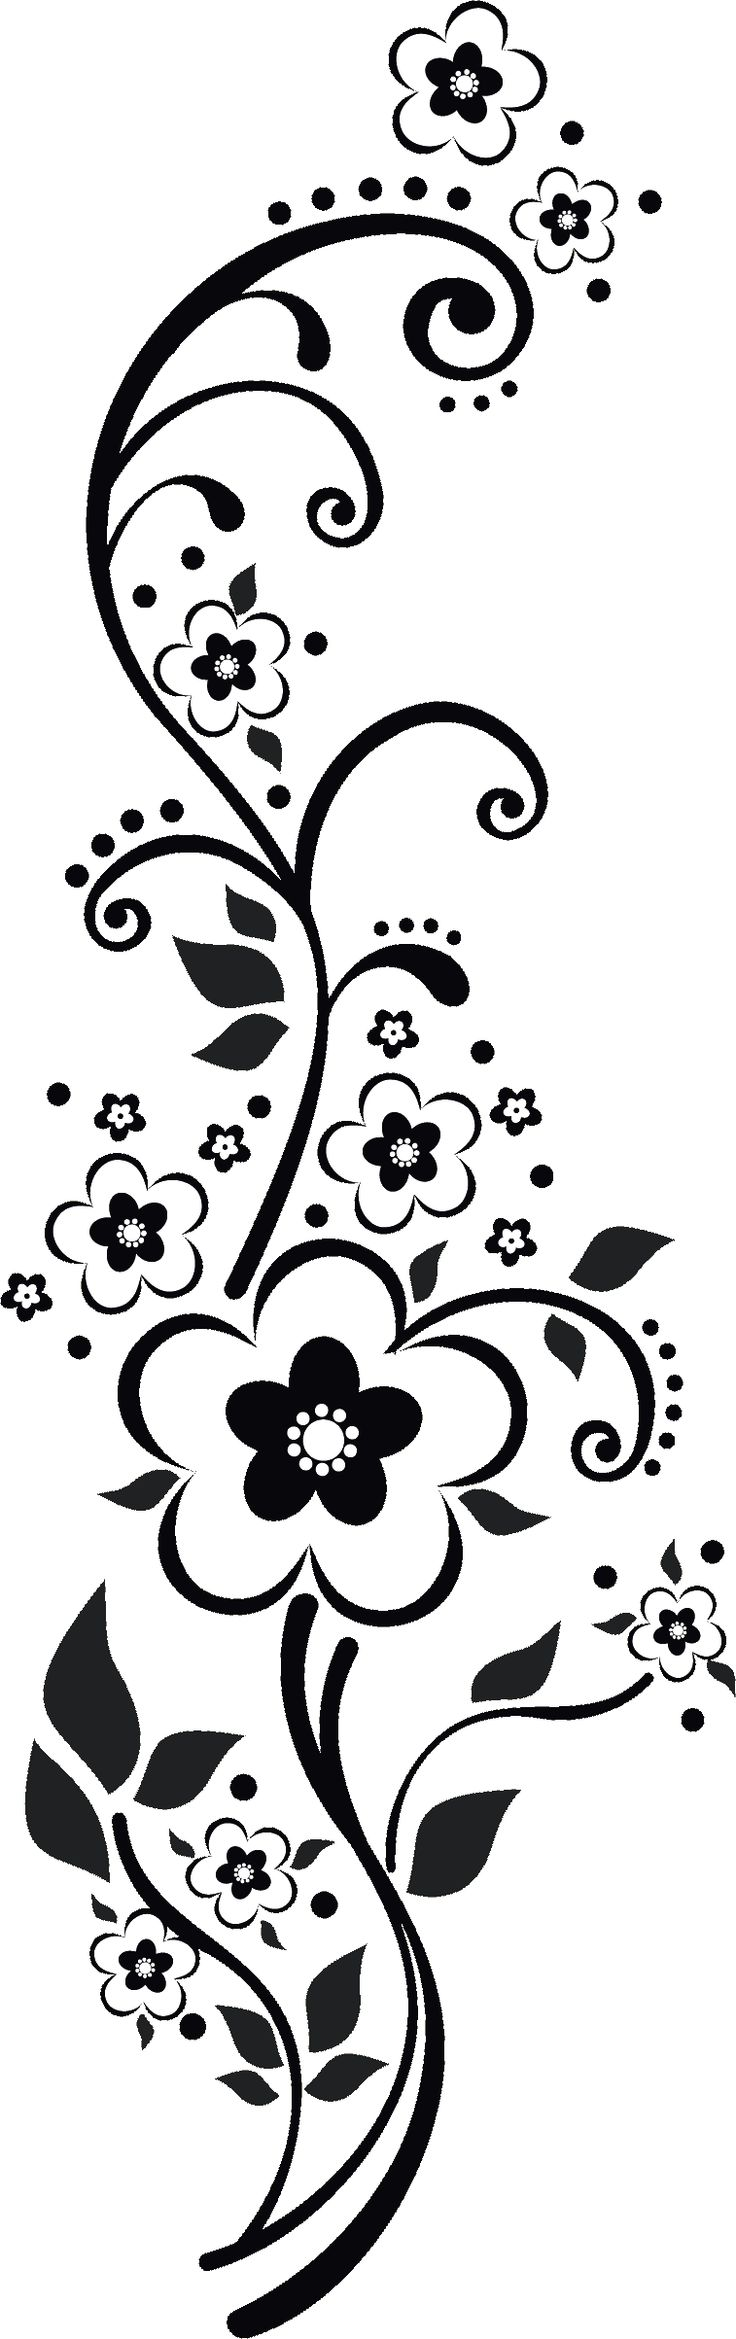 Flowers Design Black And White Png (+).